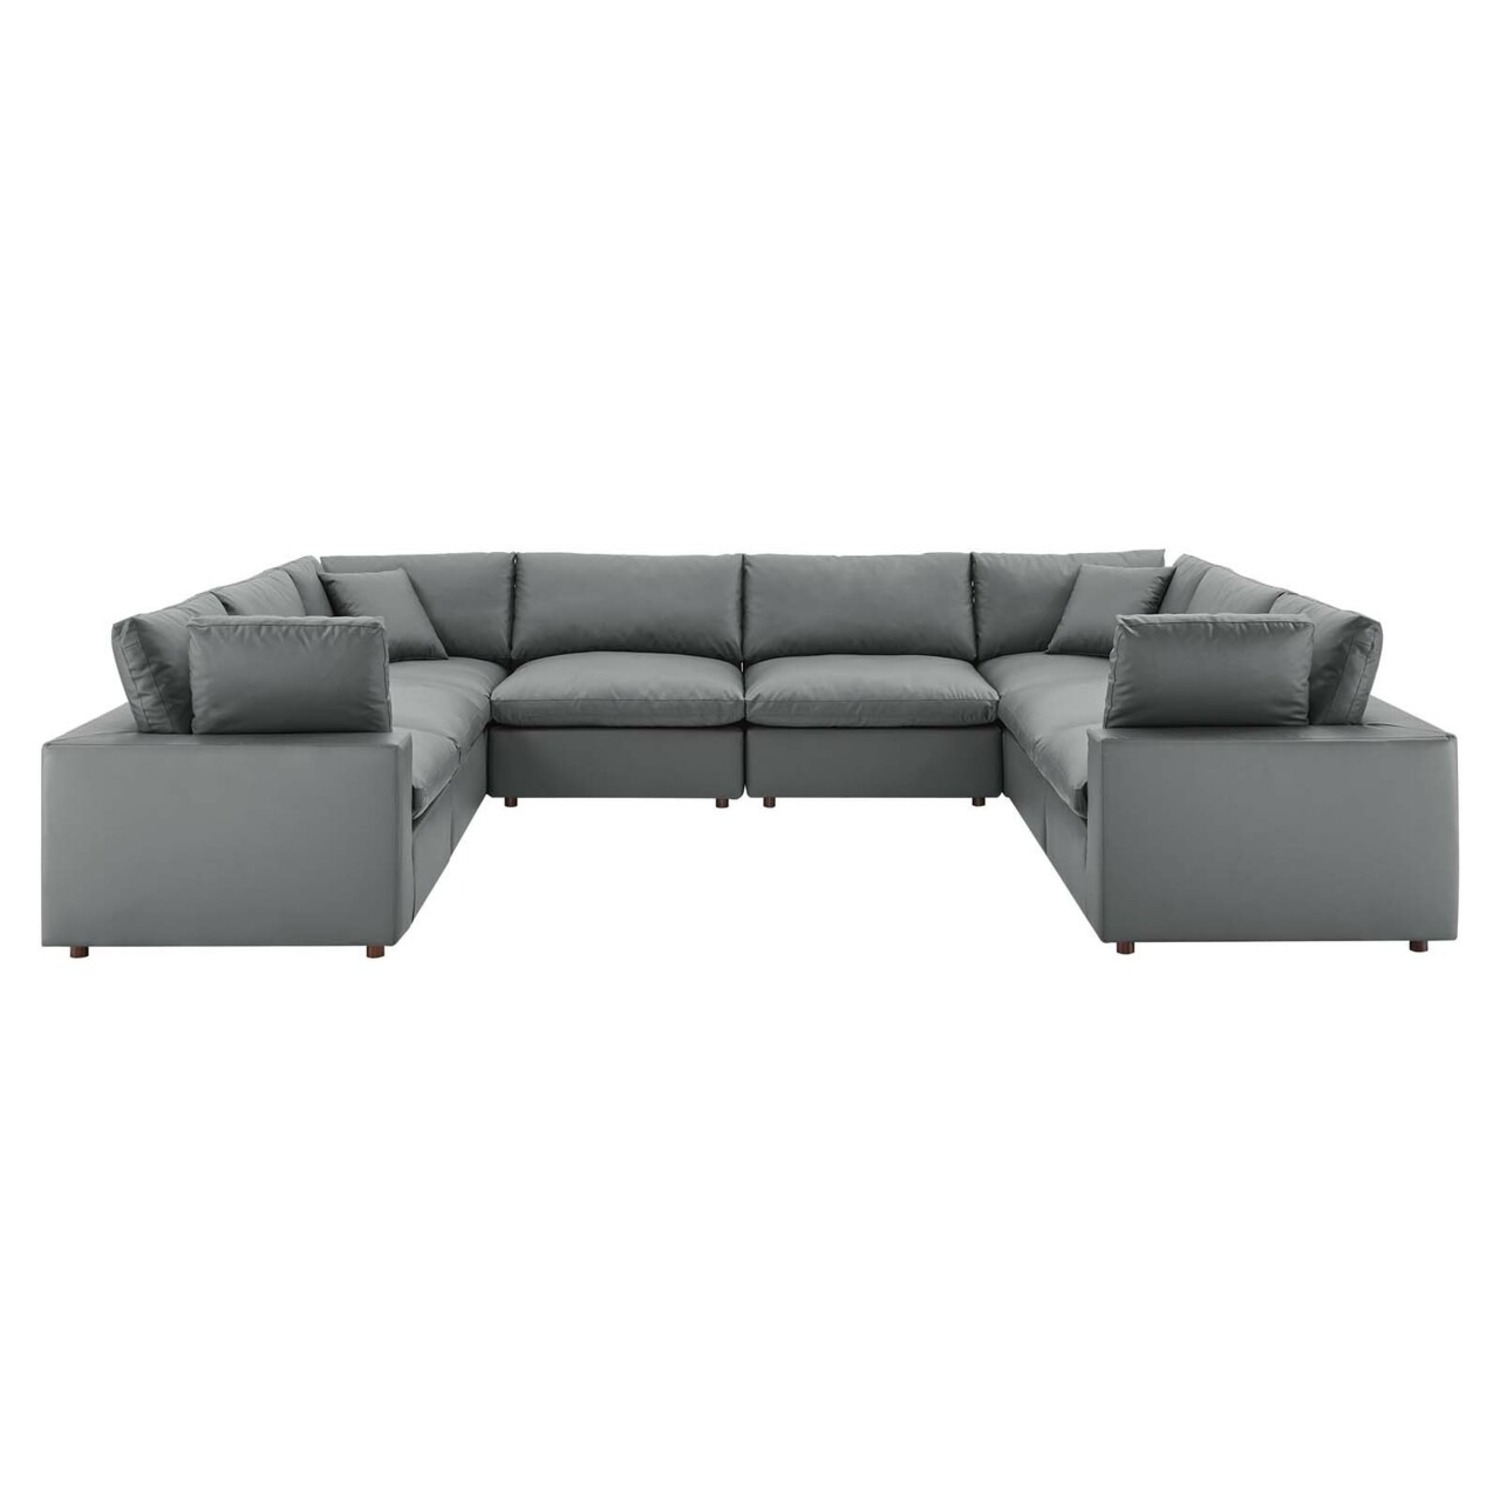 8-Piece Sectional Sofa In Gray Vegan Leather - image-0